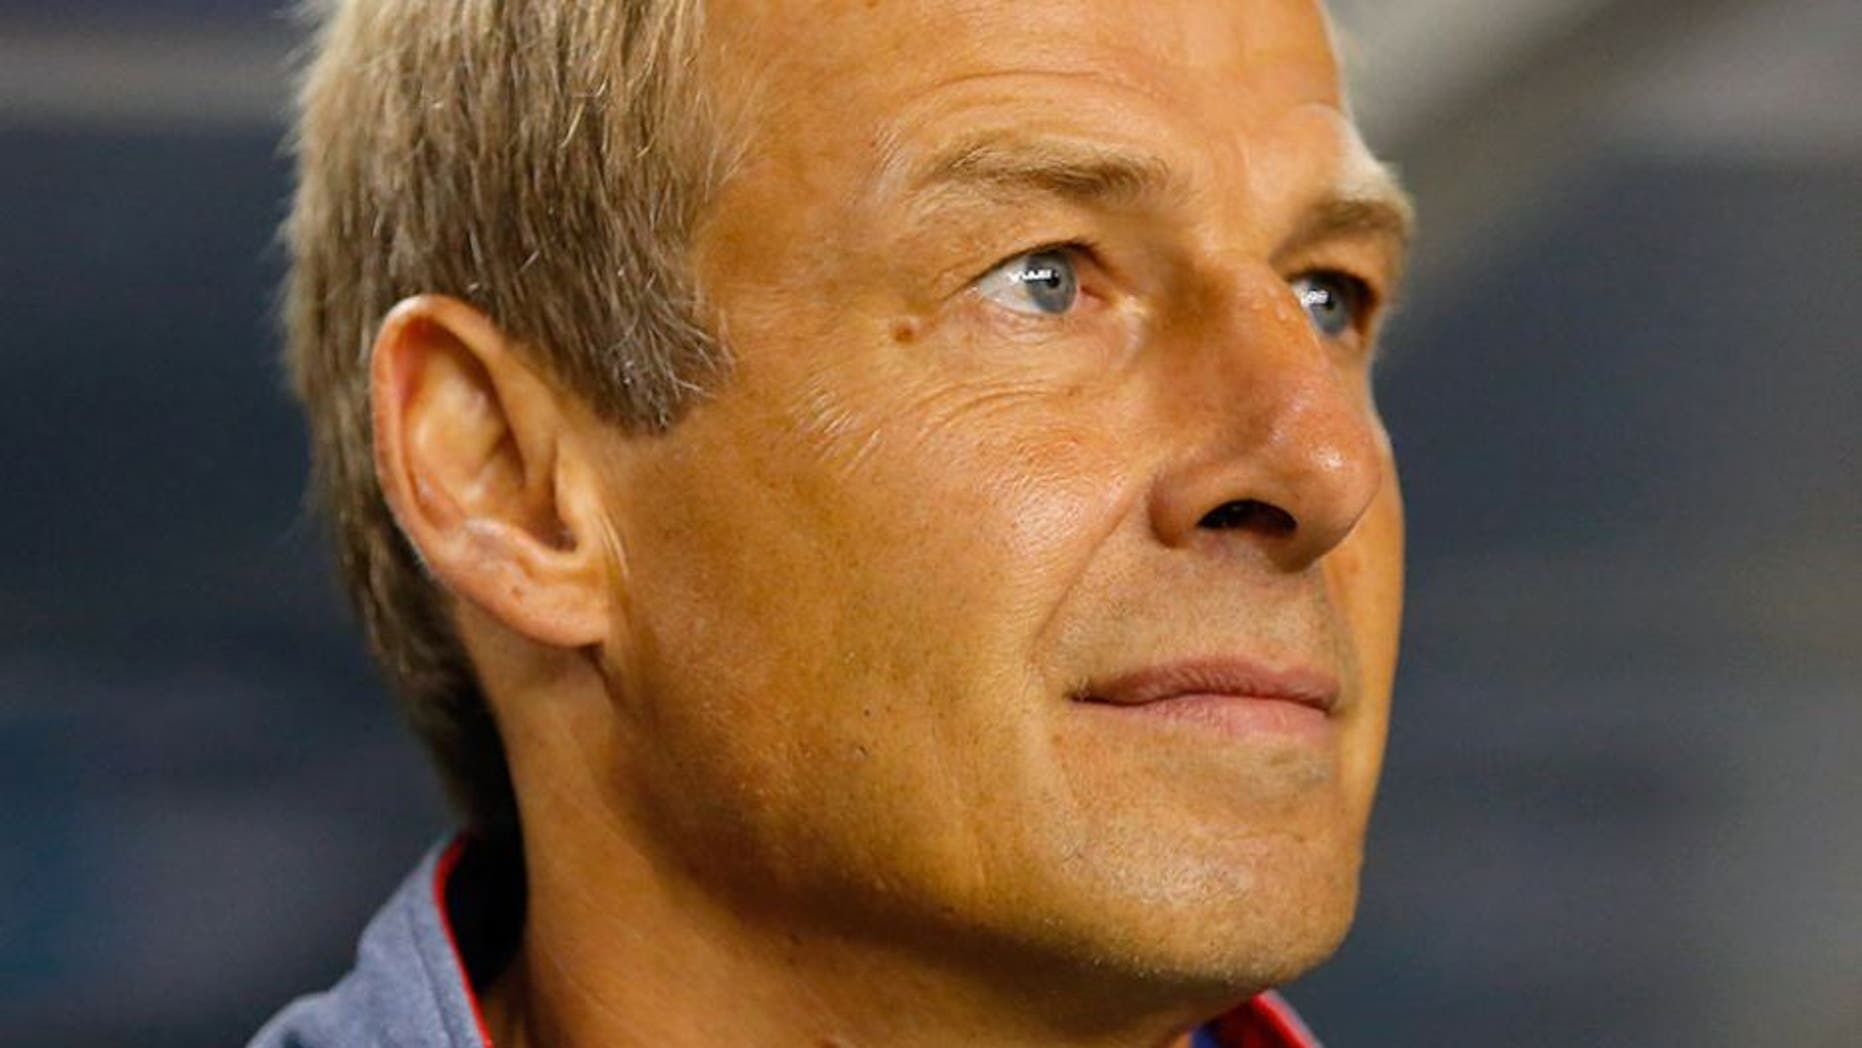 ATLANTA, GA - JULY 22: Jurgen Klinsmann of the United States of America stands prior to the 2015 CONCACAF Golf Cup Semifinal match between Jamaica and the United States at Georgia Dome on July 22, 2015 in Atlanta, Georgia. (Photo by Kevin C. Cox/Getty Images)